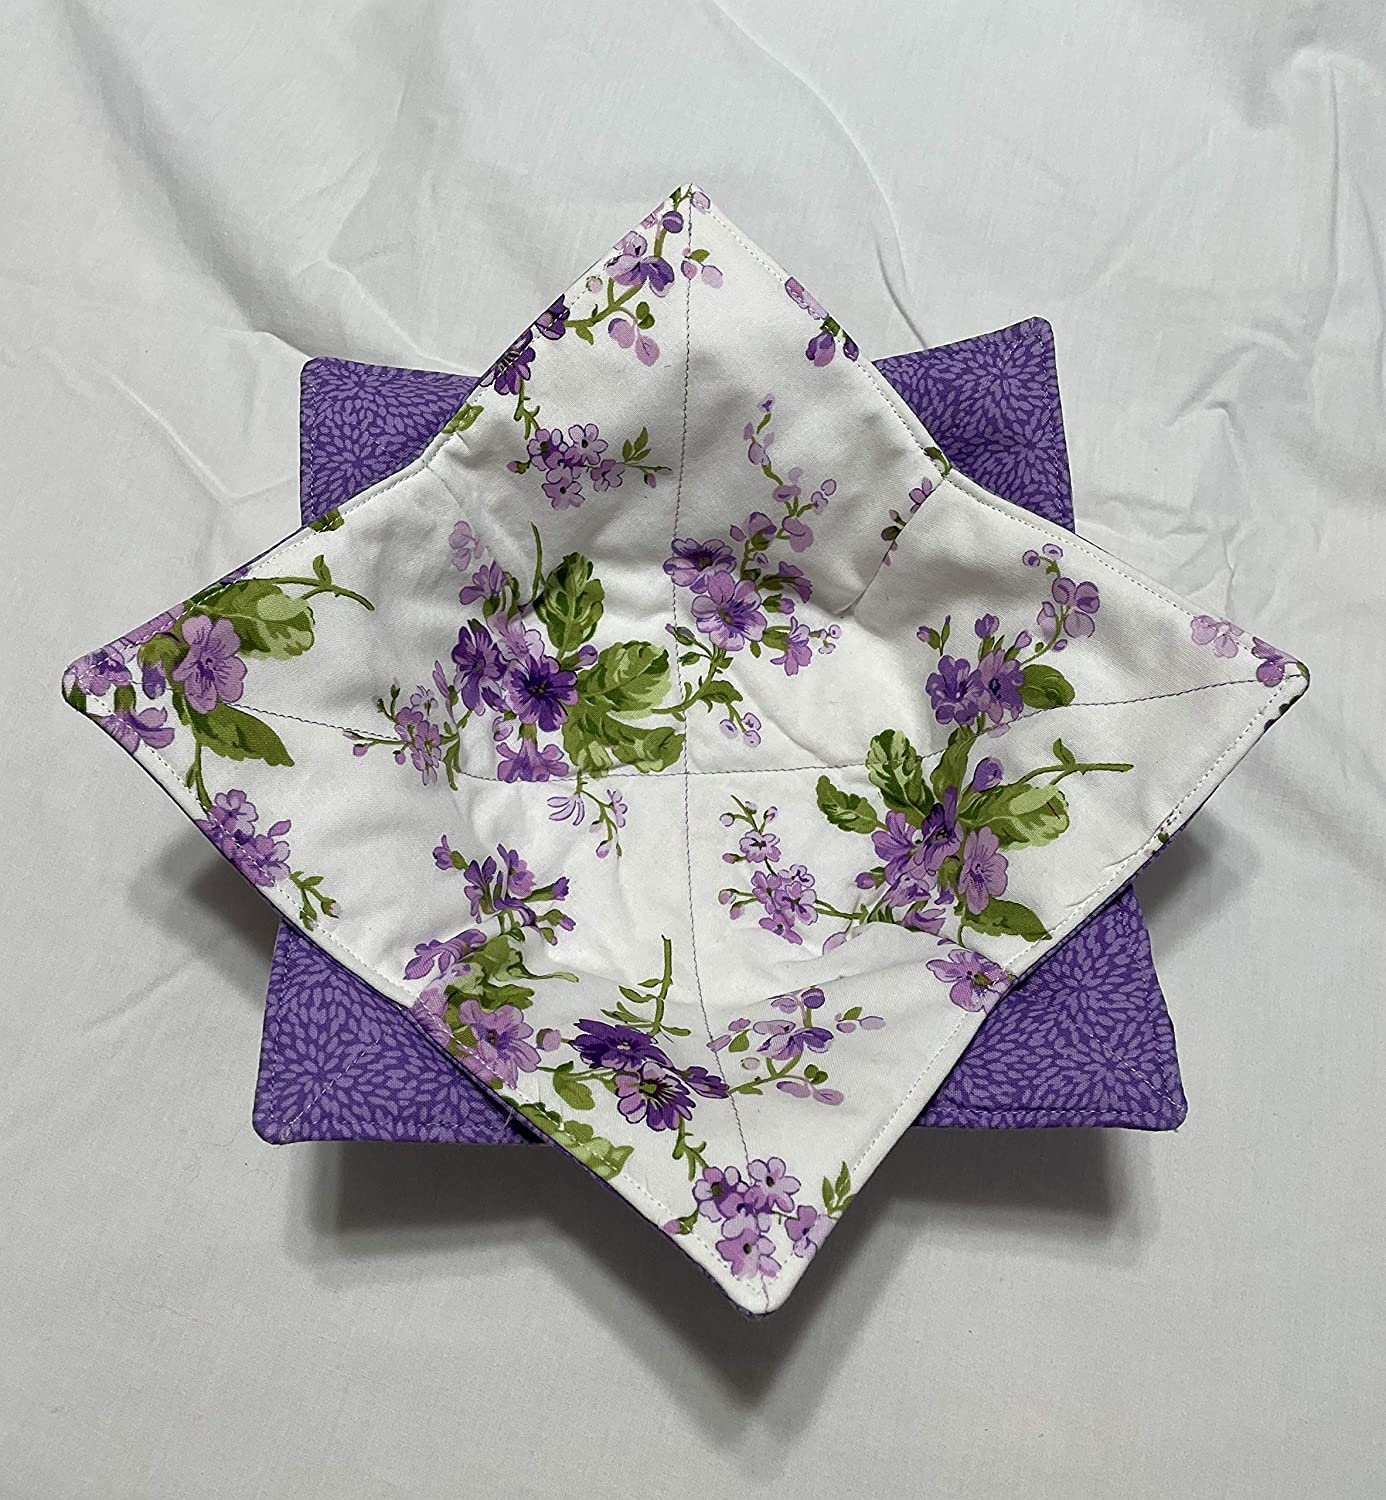 Bowl Cozy Branded goods New product type Purple Floral